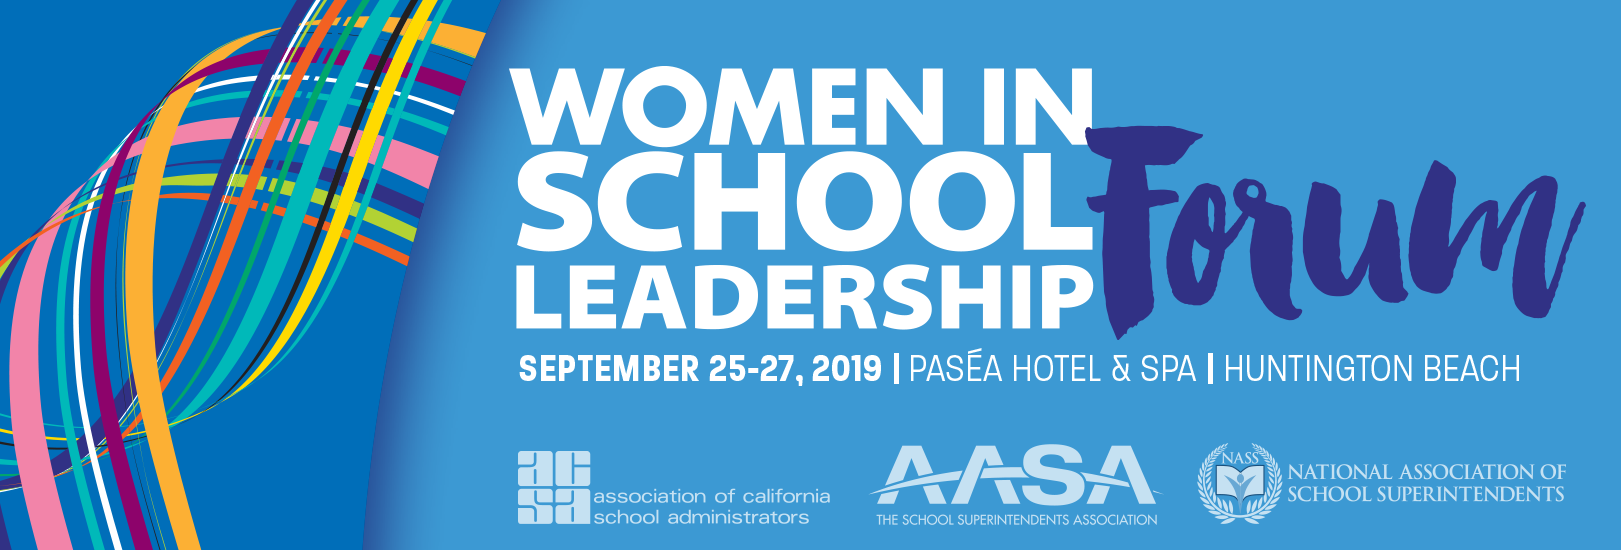 2019 Women in School Leadership Forum